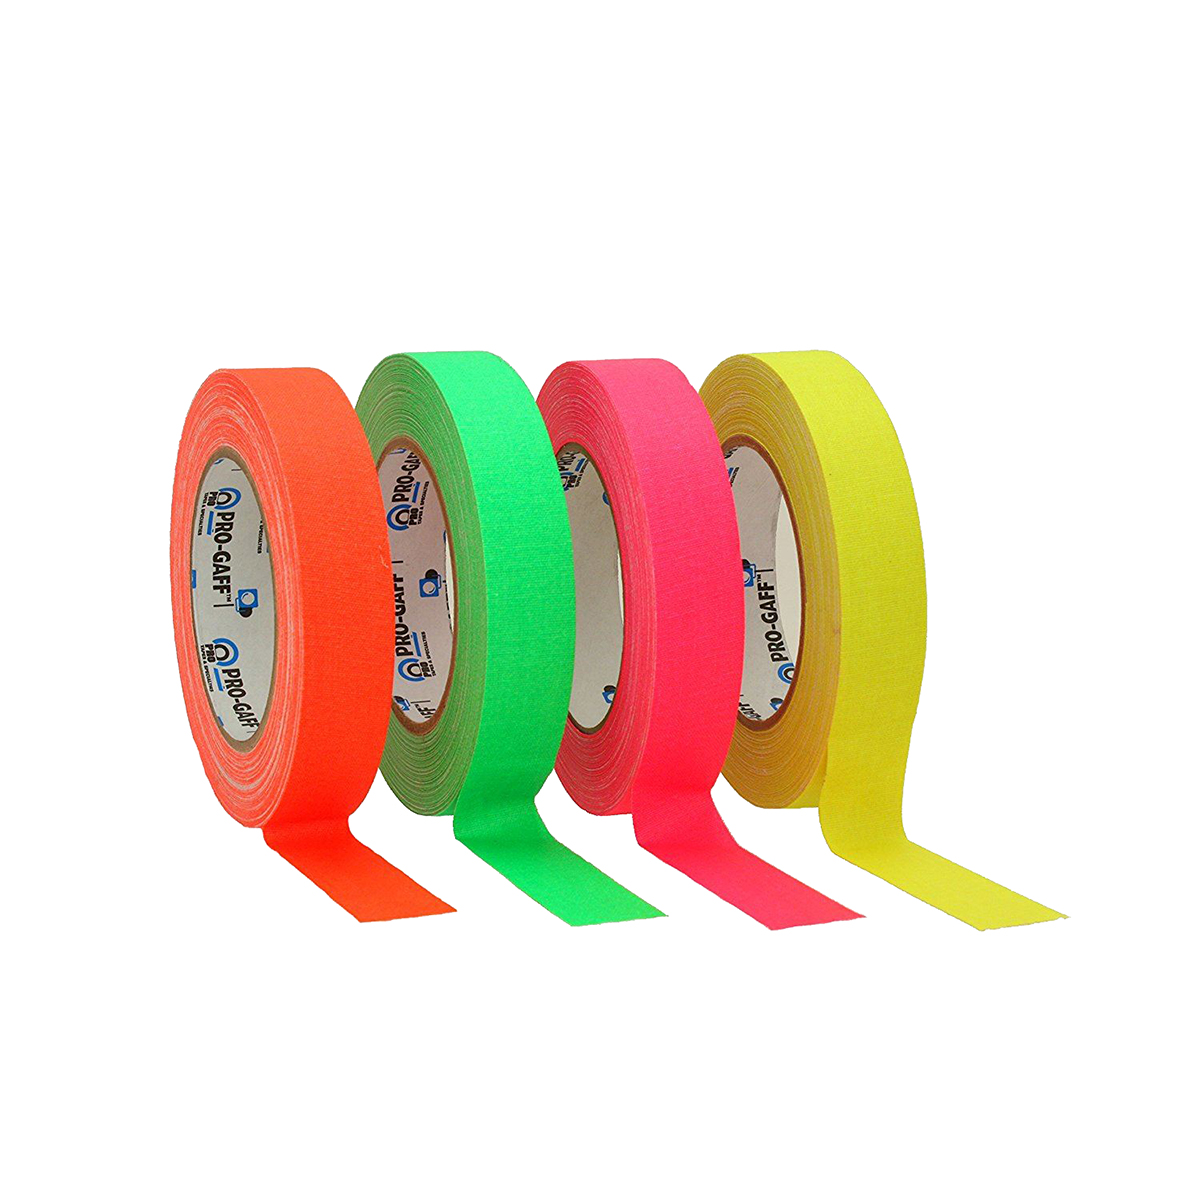 Immagine Gaffer tape Fluo